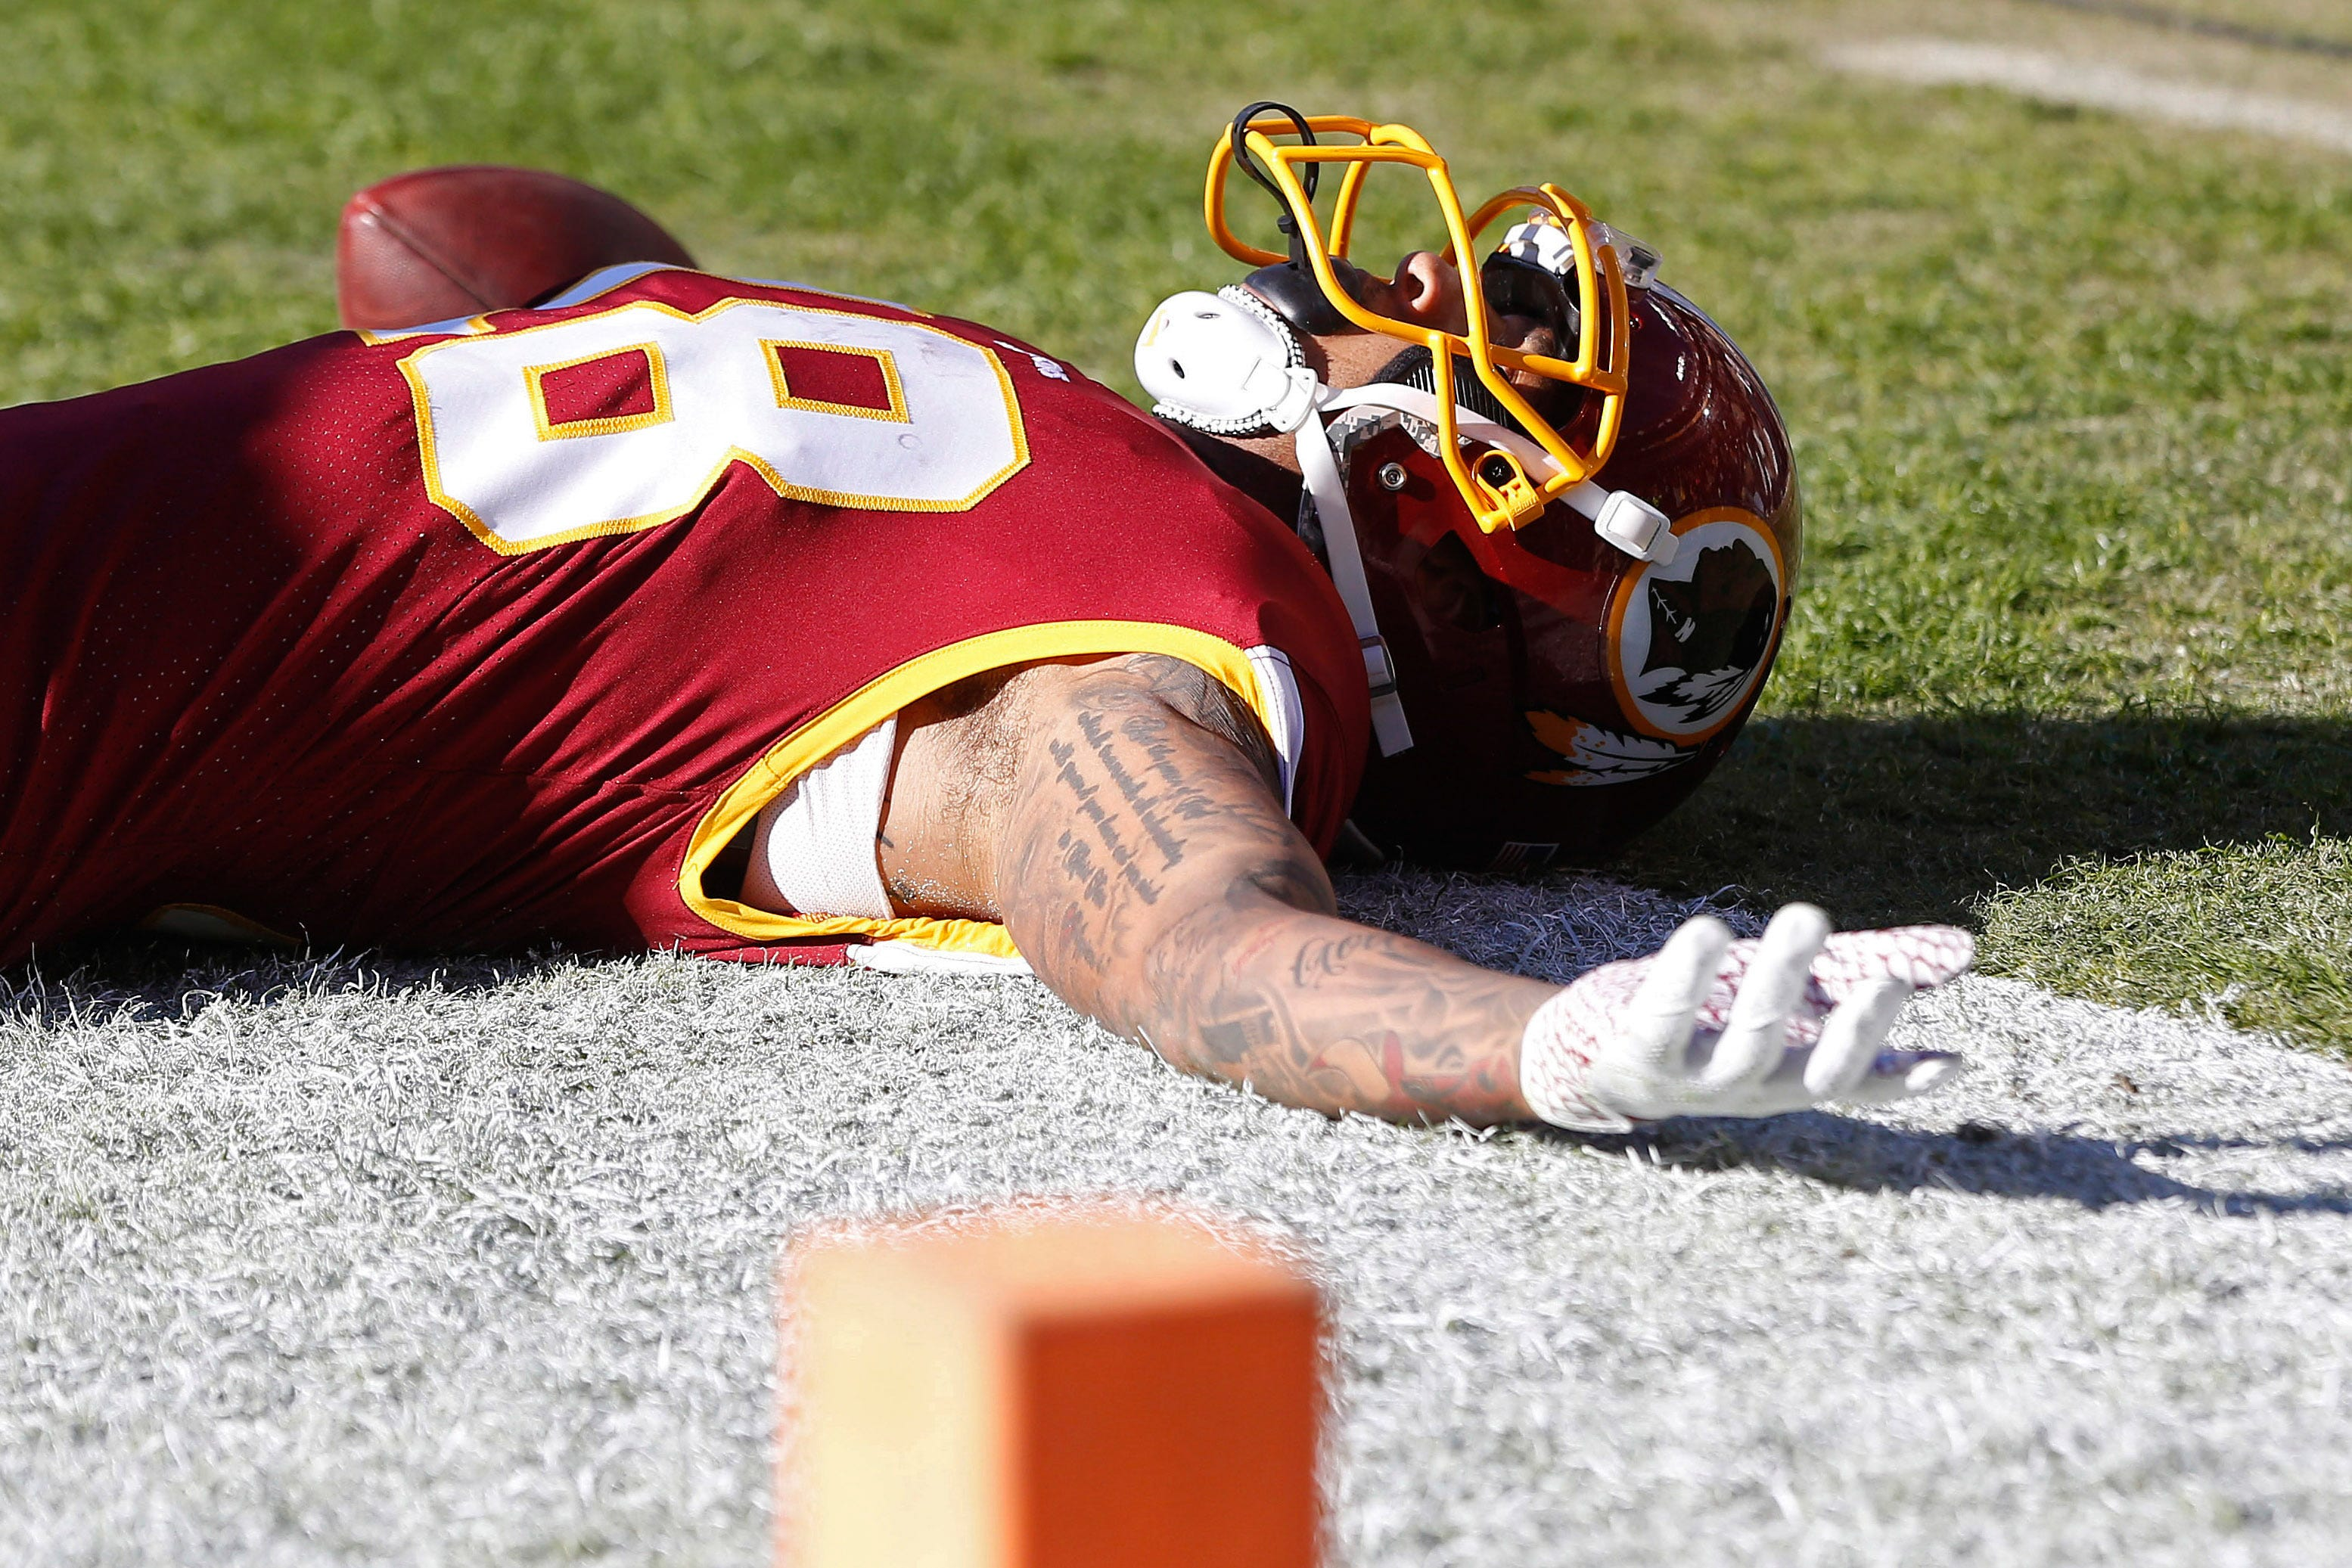 32. Redskins (31): Given how they collapsed without Alex Smith and likely won't have Adrian Peterson back, 2019 already has potential as dismal campaign.